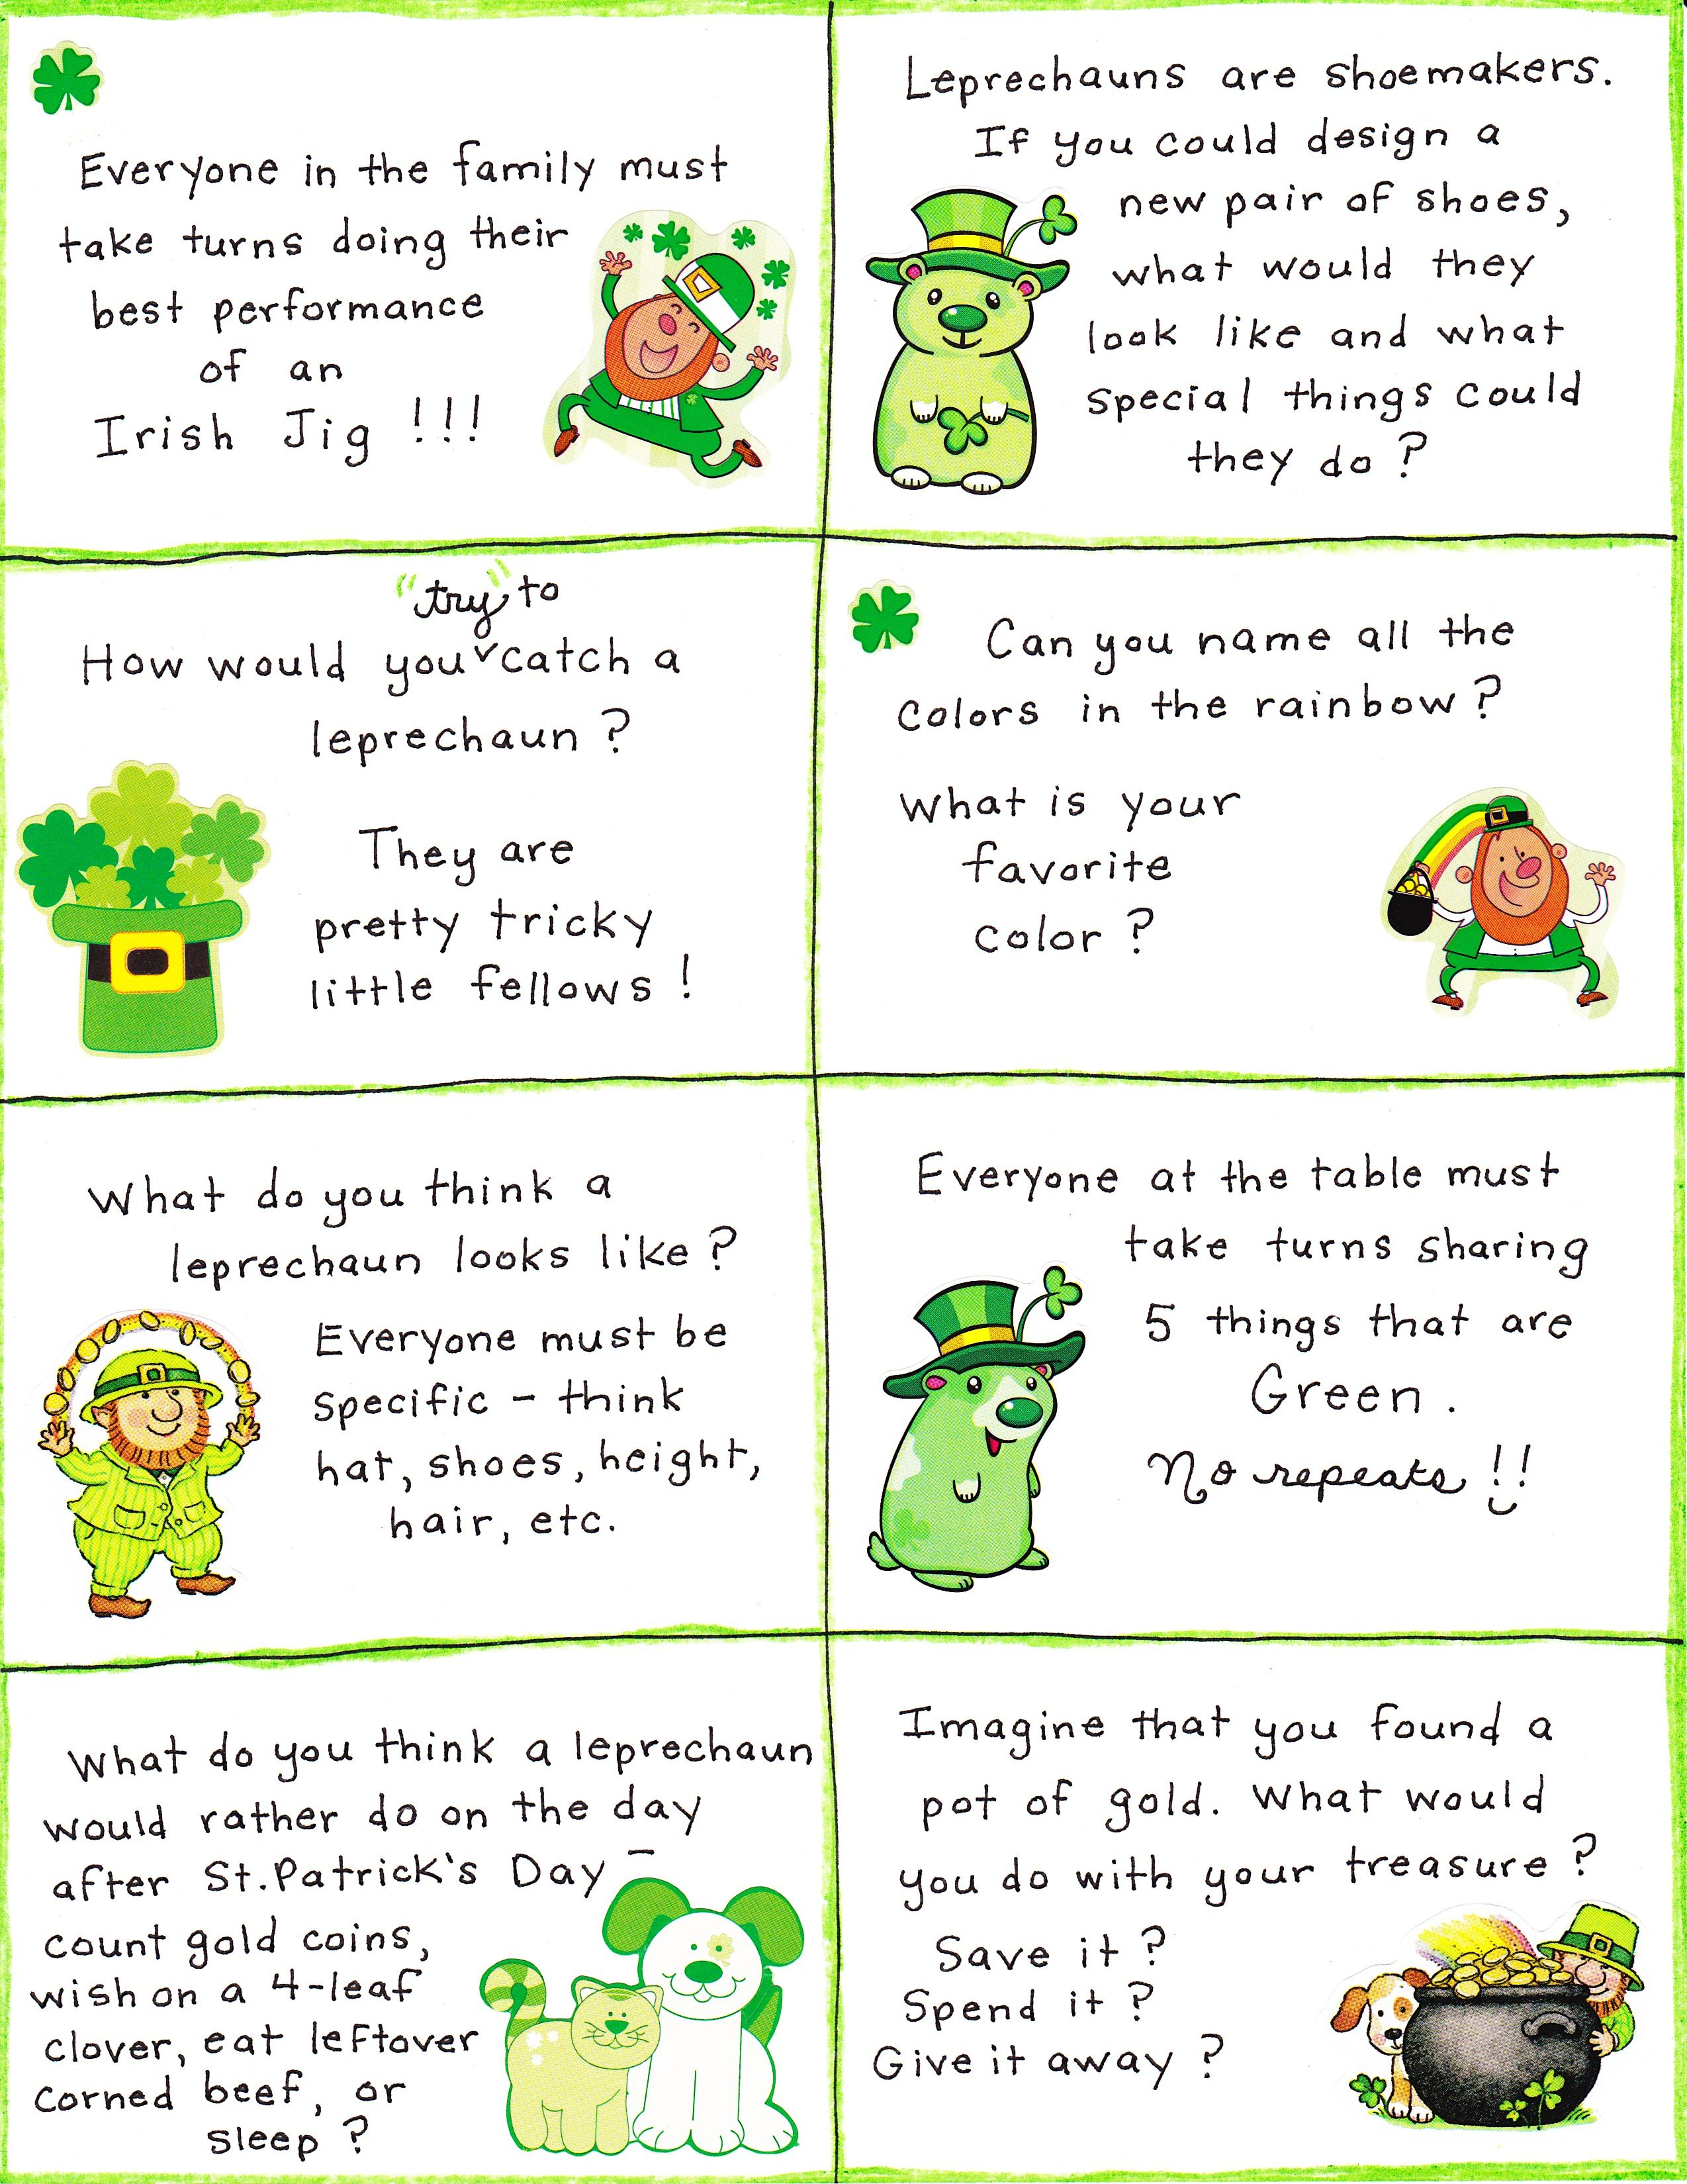 St. Patrick's Day Conversation Cards - Free Printable | Celebration - Free Printable St Patrick's Day Card